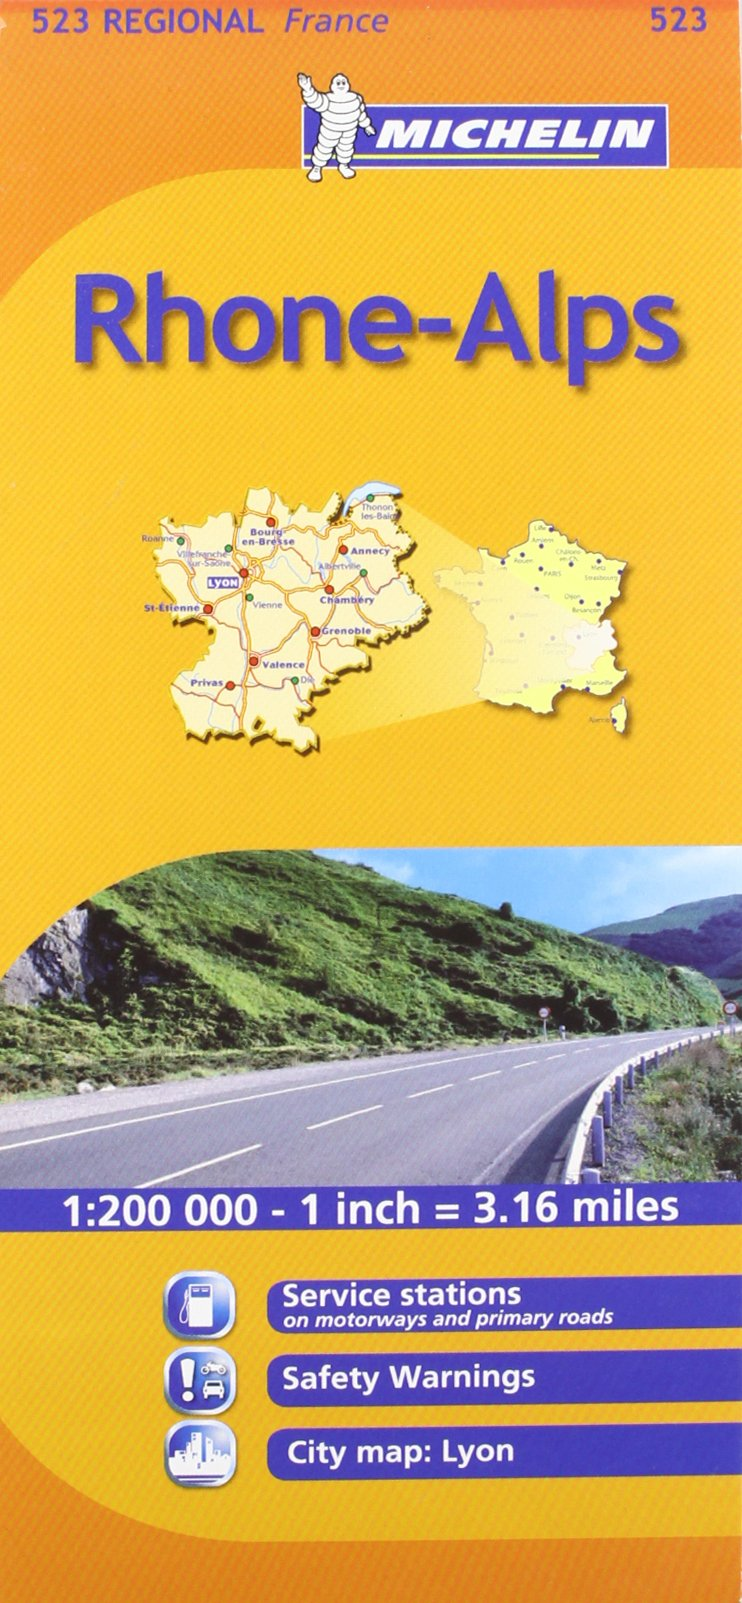 Michelin Map France Rhone Alpes 523 Maps Regional Michelin